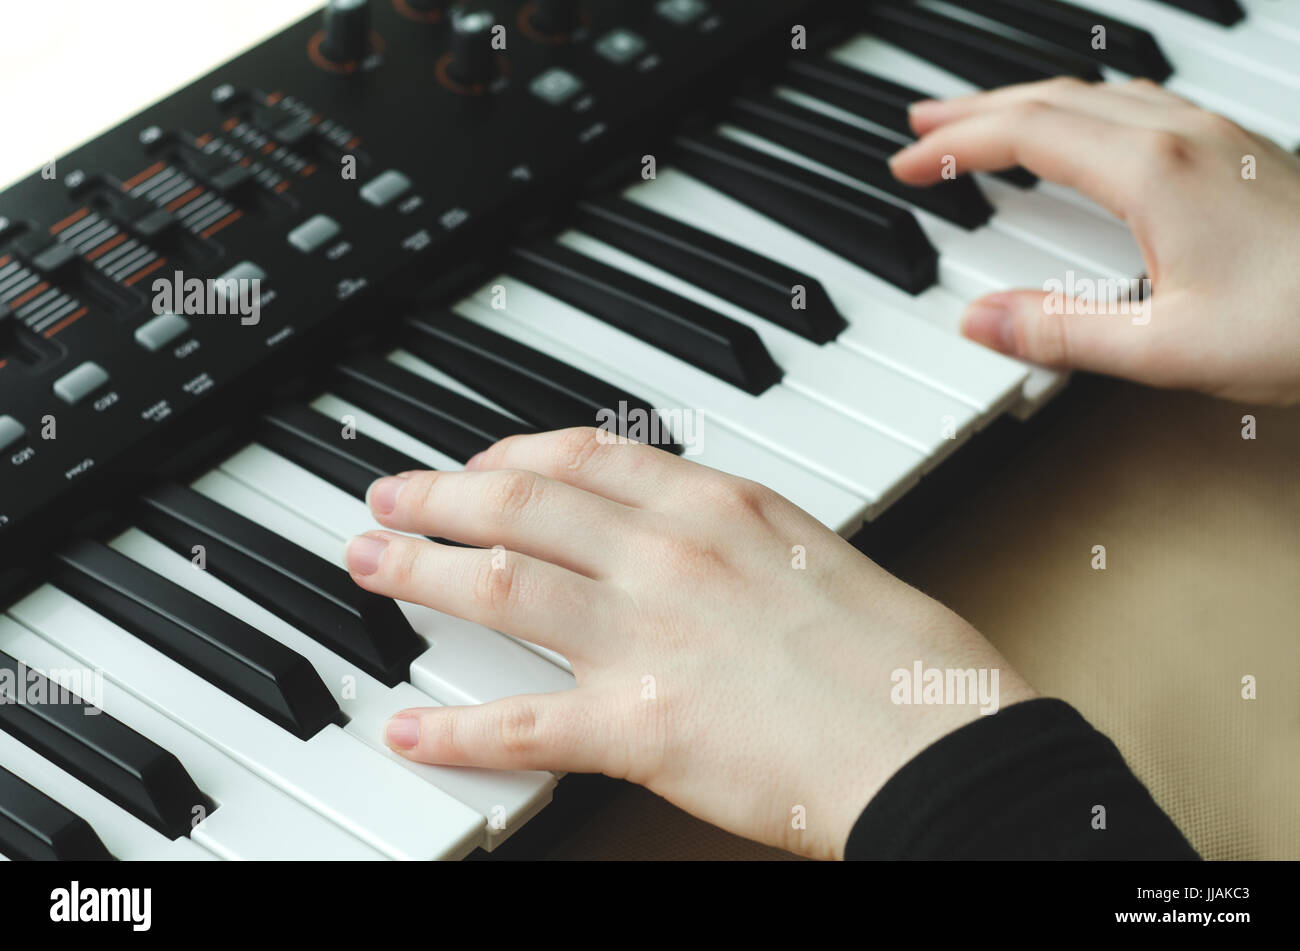 A woman in a black jacket plays a synthesizer. There are two hands in the frame. - Stock Image